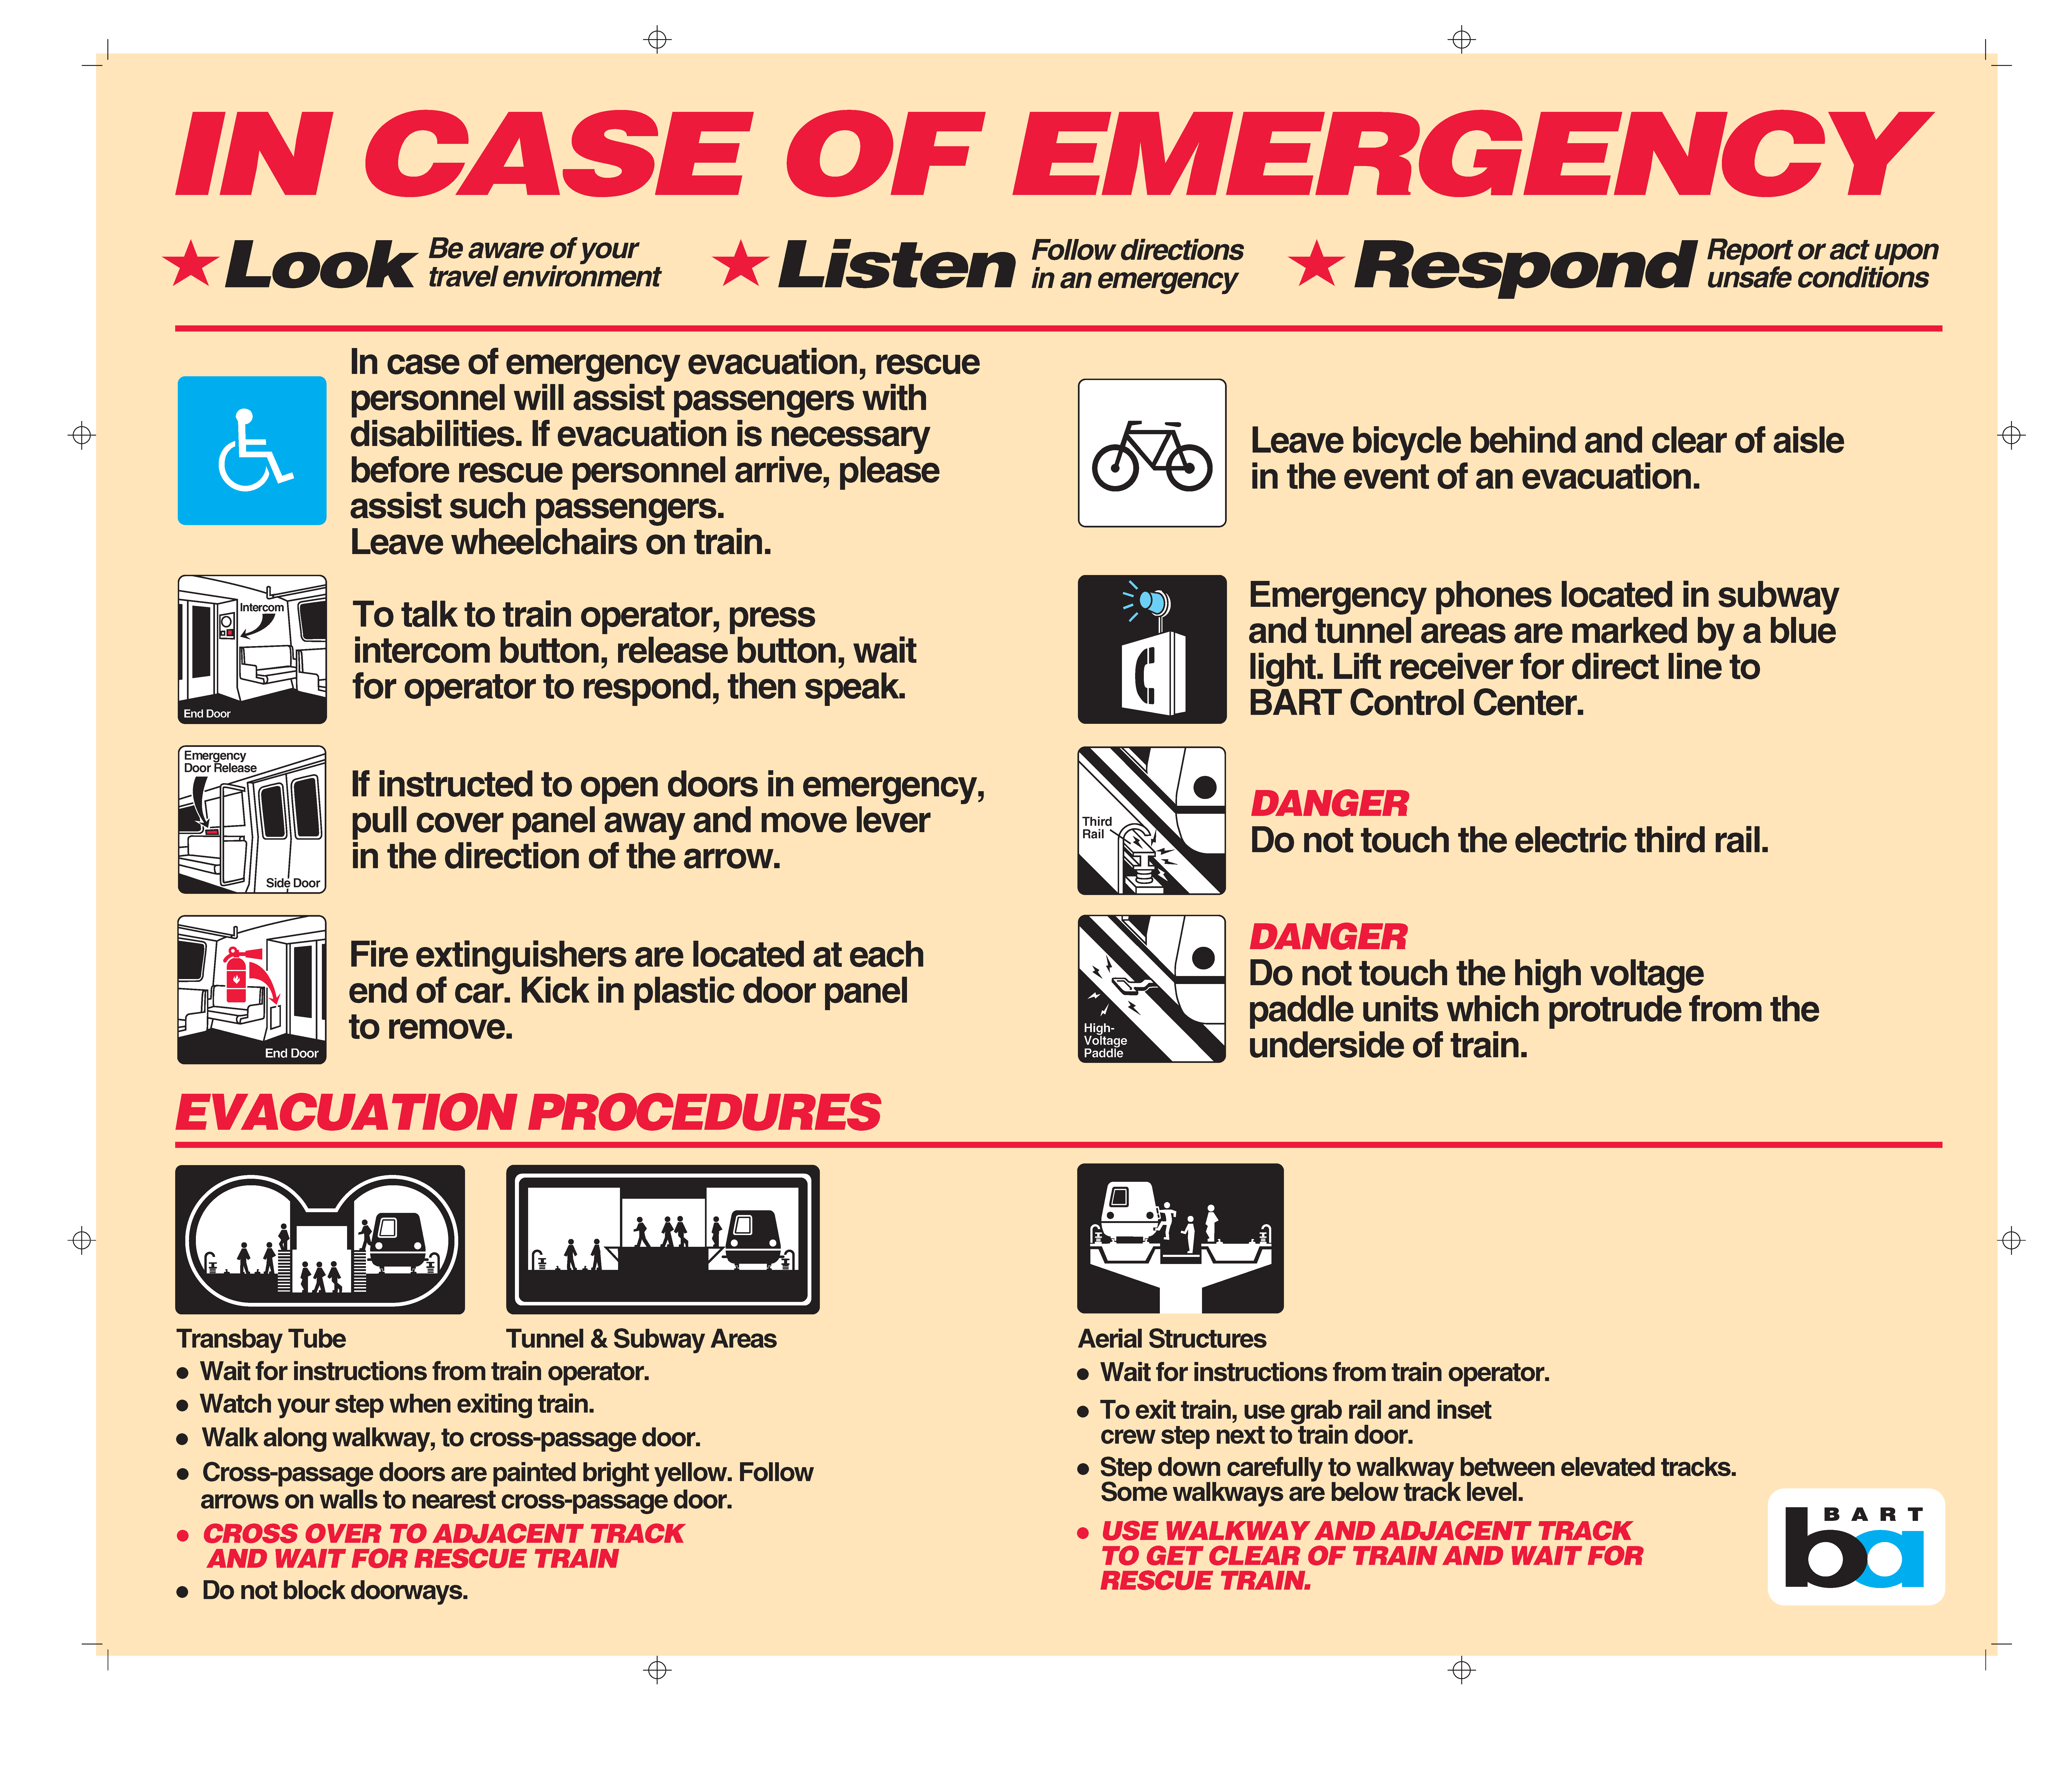 Old Version of Safety Card